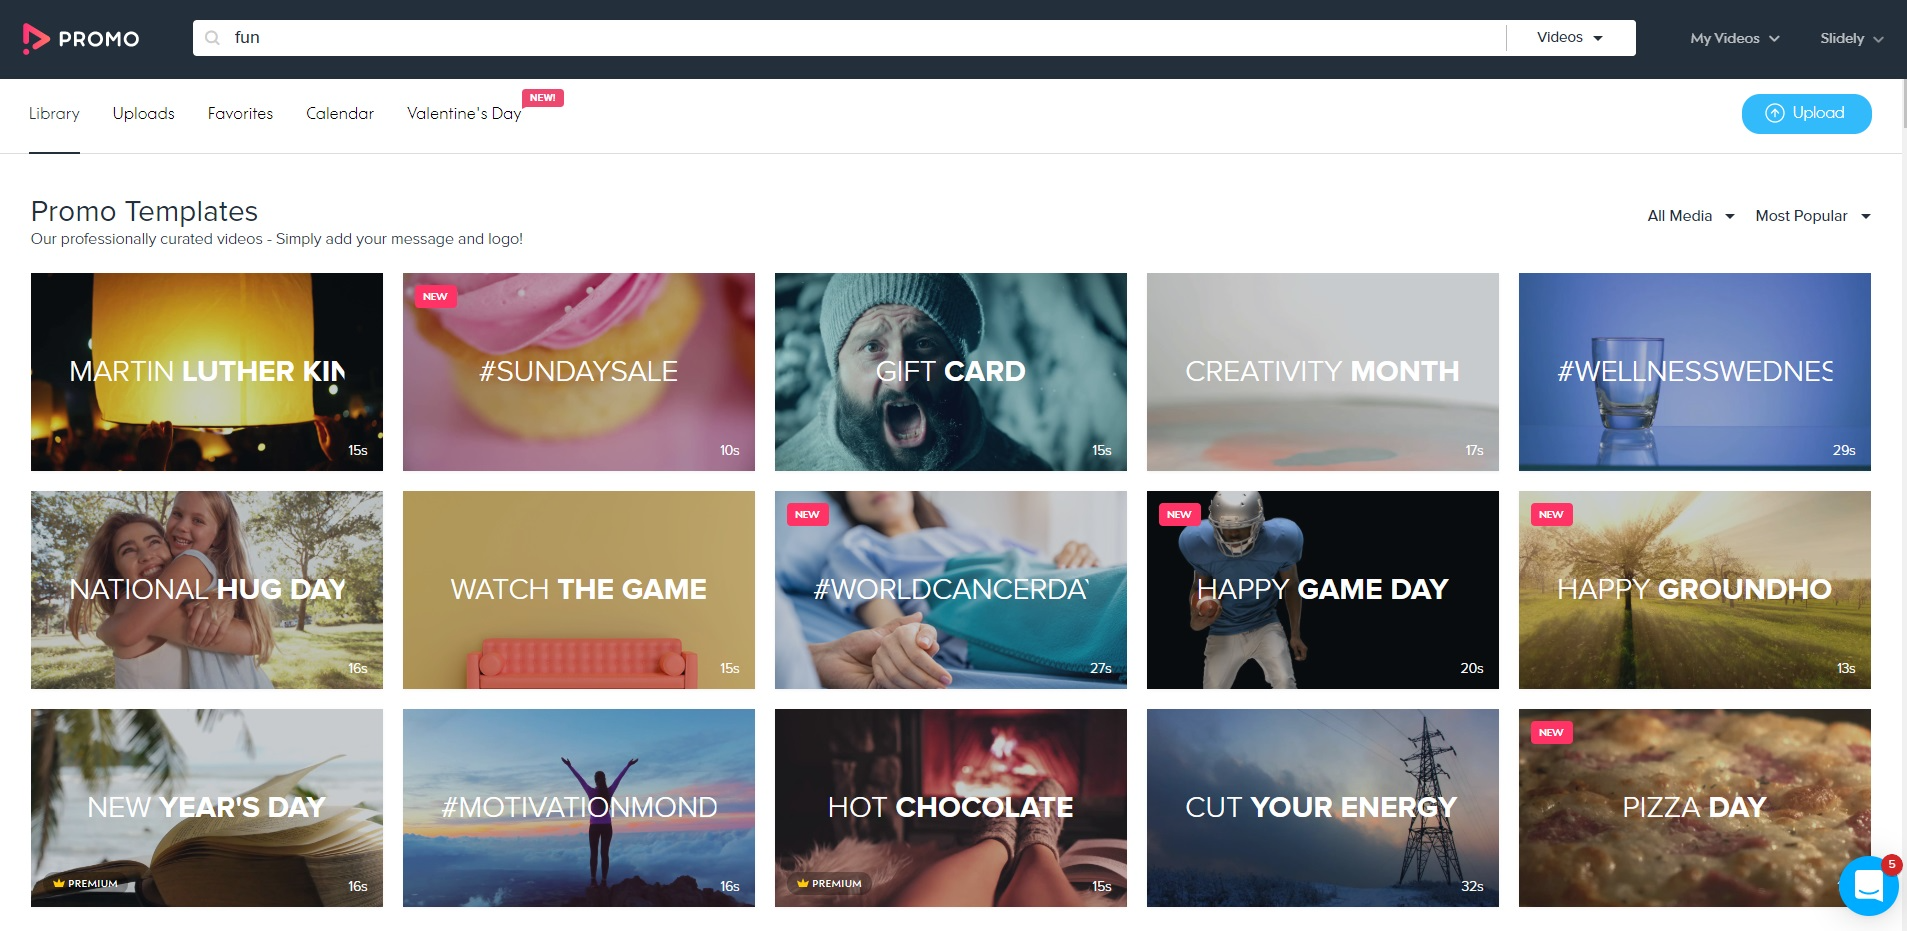 Choose from Promo's selection of over 15 million video clips and templates.